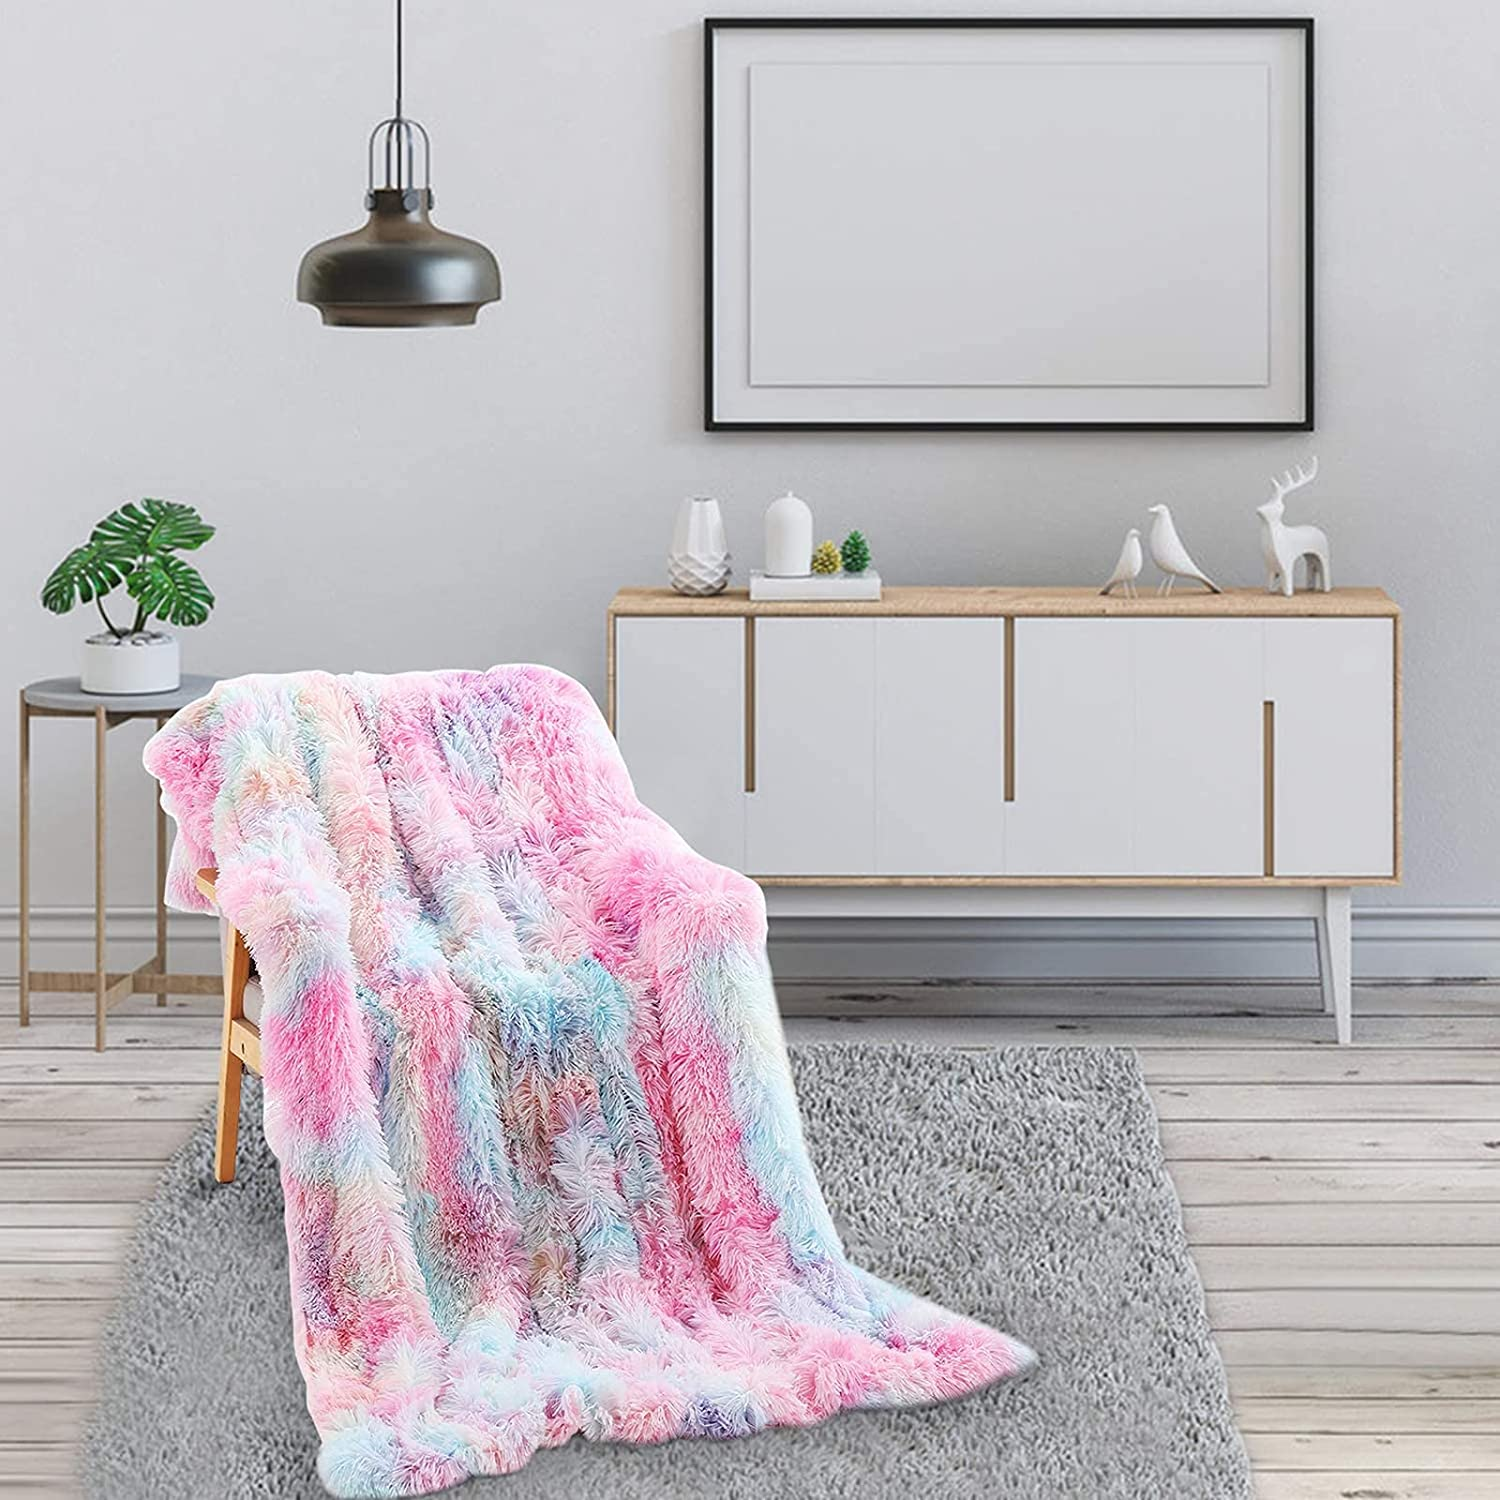 NXM Super Soft Long Shaggy Throw Elegant Cheap mail order specialty store Faux Deluxe Warm C Blanket Fur